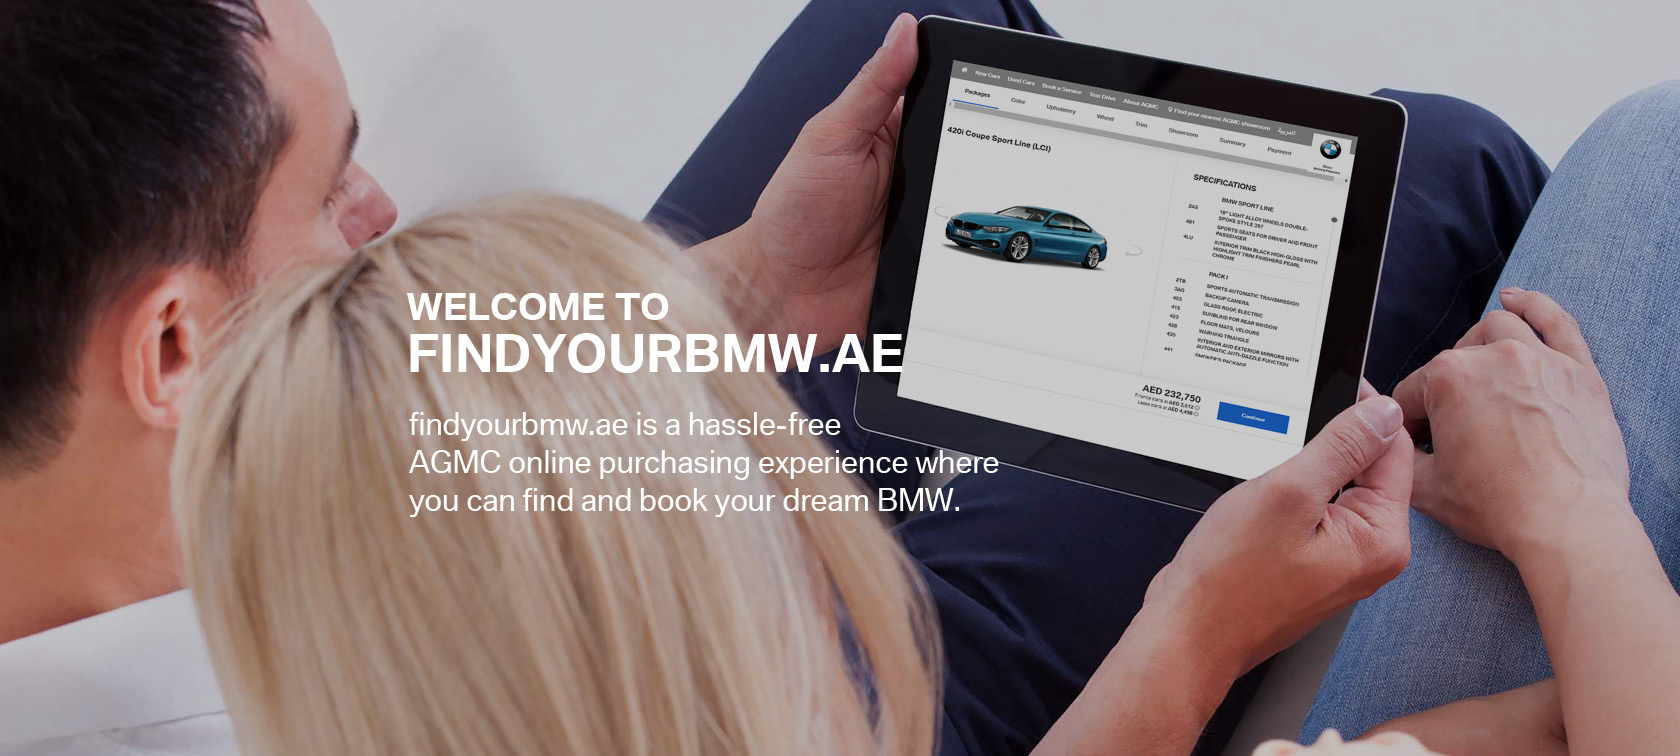 Welcome to Findyourbmw